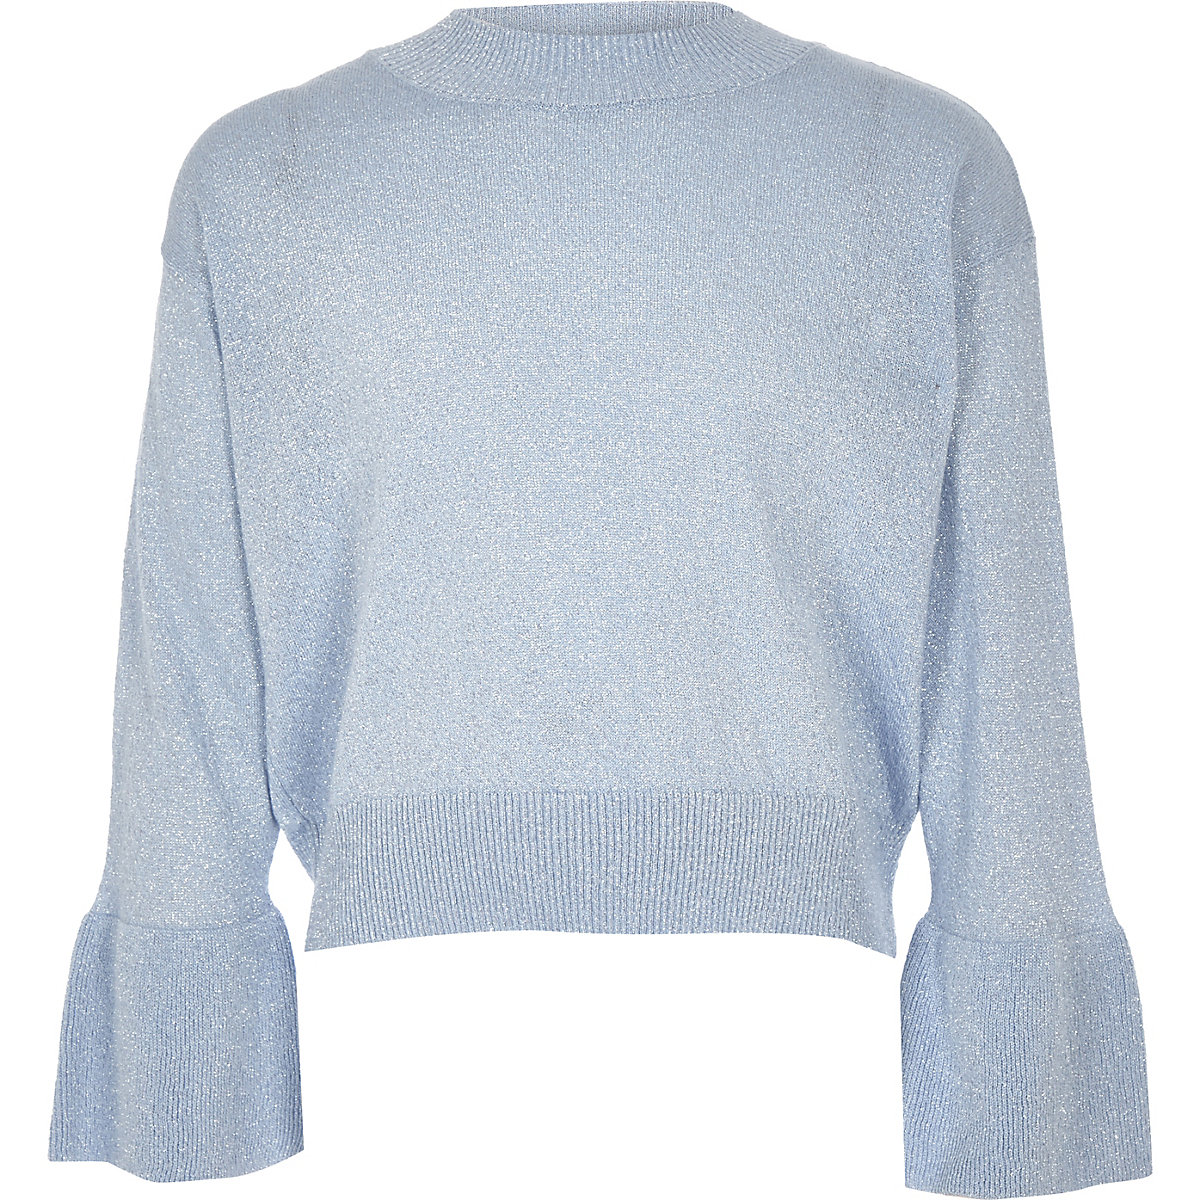 Girls blue knit metallic bell sleeve sweater